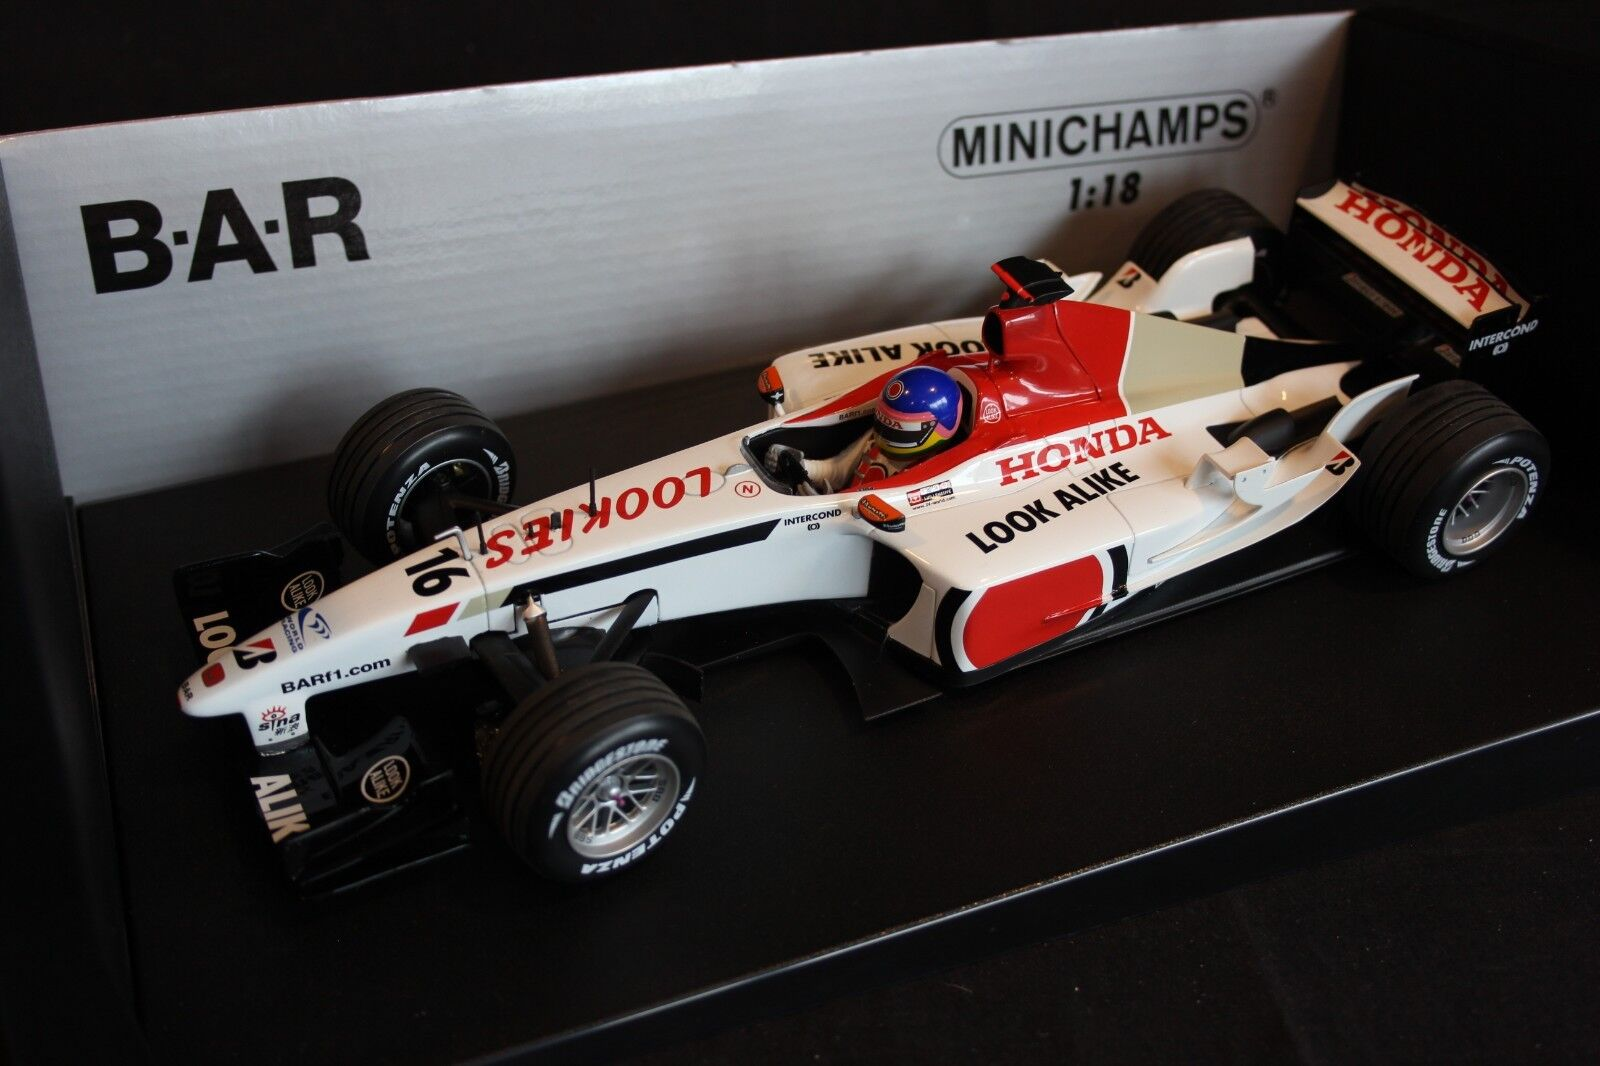 Minichamps BAR Honda 005 2003 1:18  16 Jacques Villeneuve  CAN